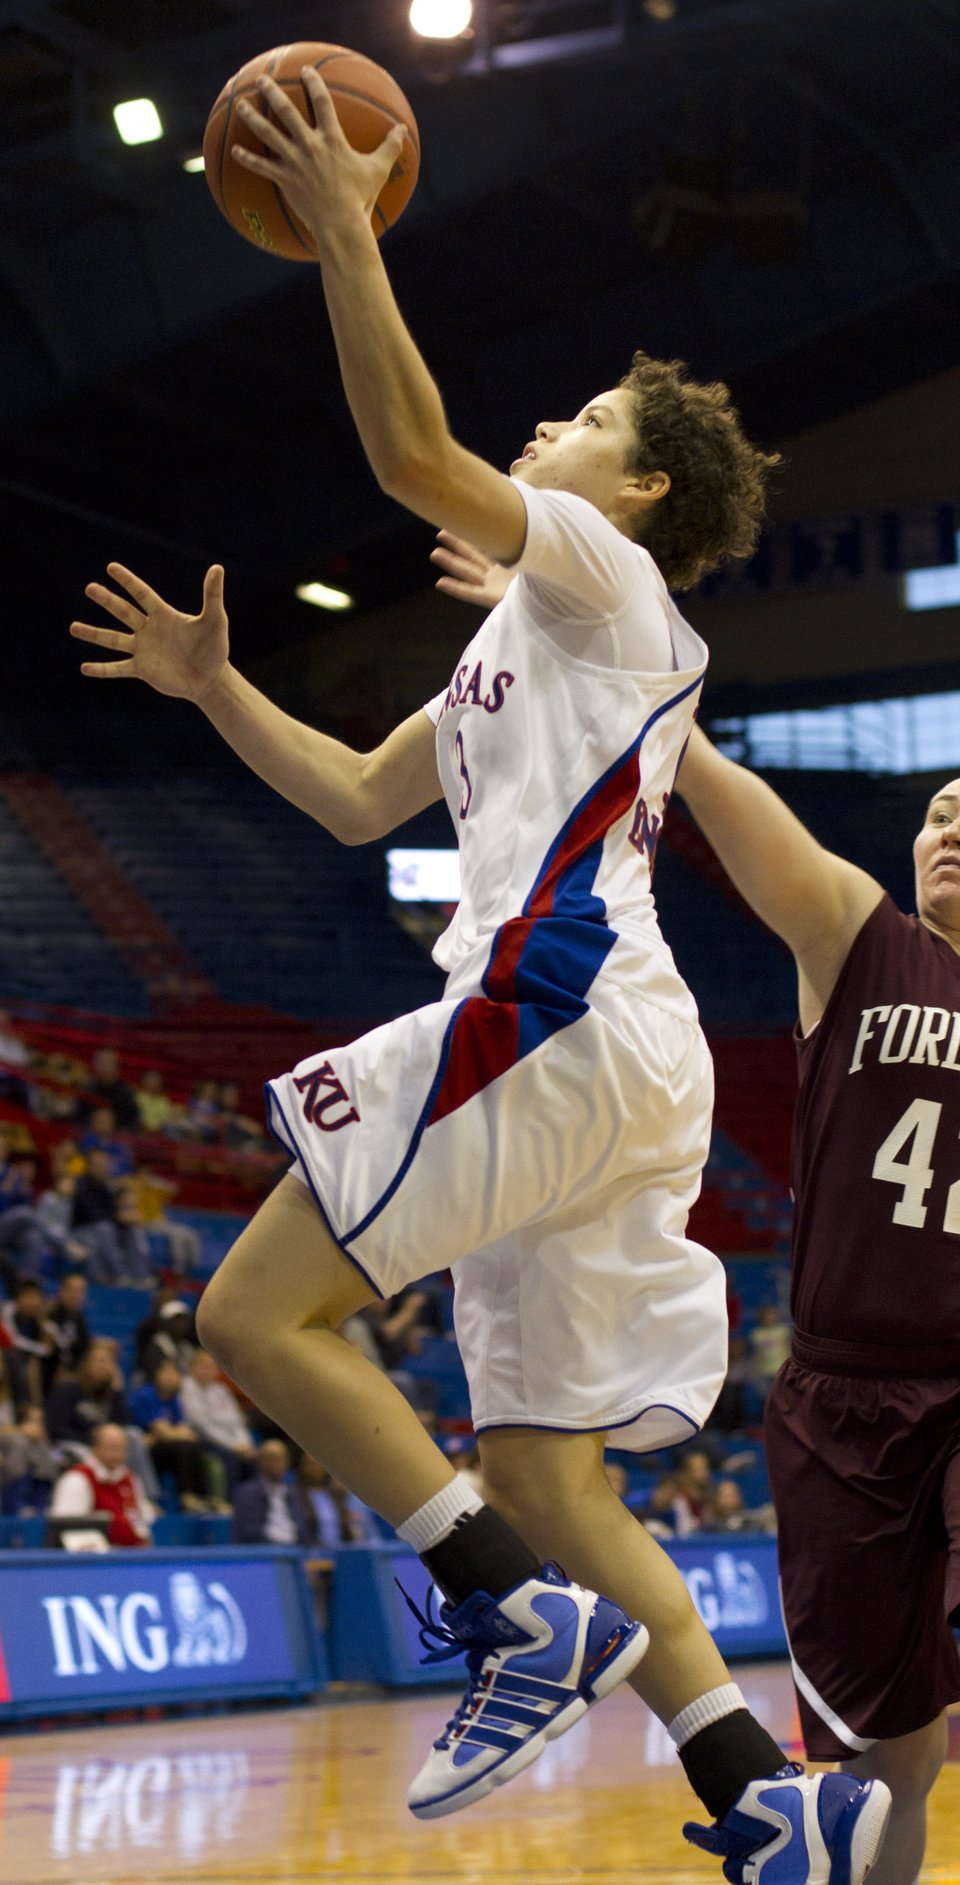 KU women's basketball vs. Fordham | KUsports.com